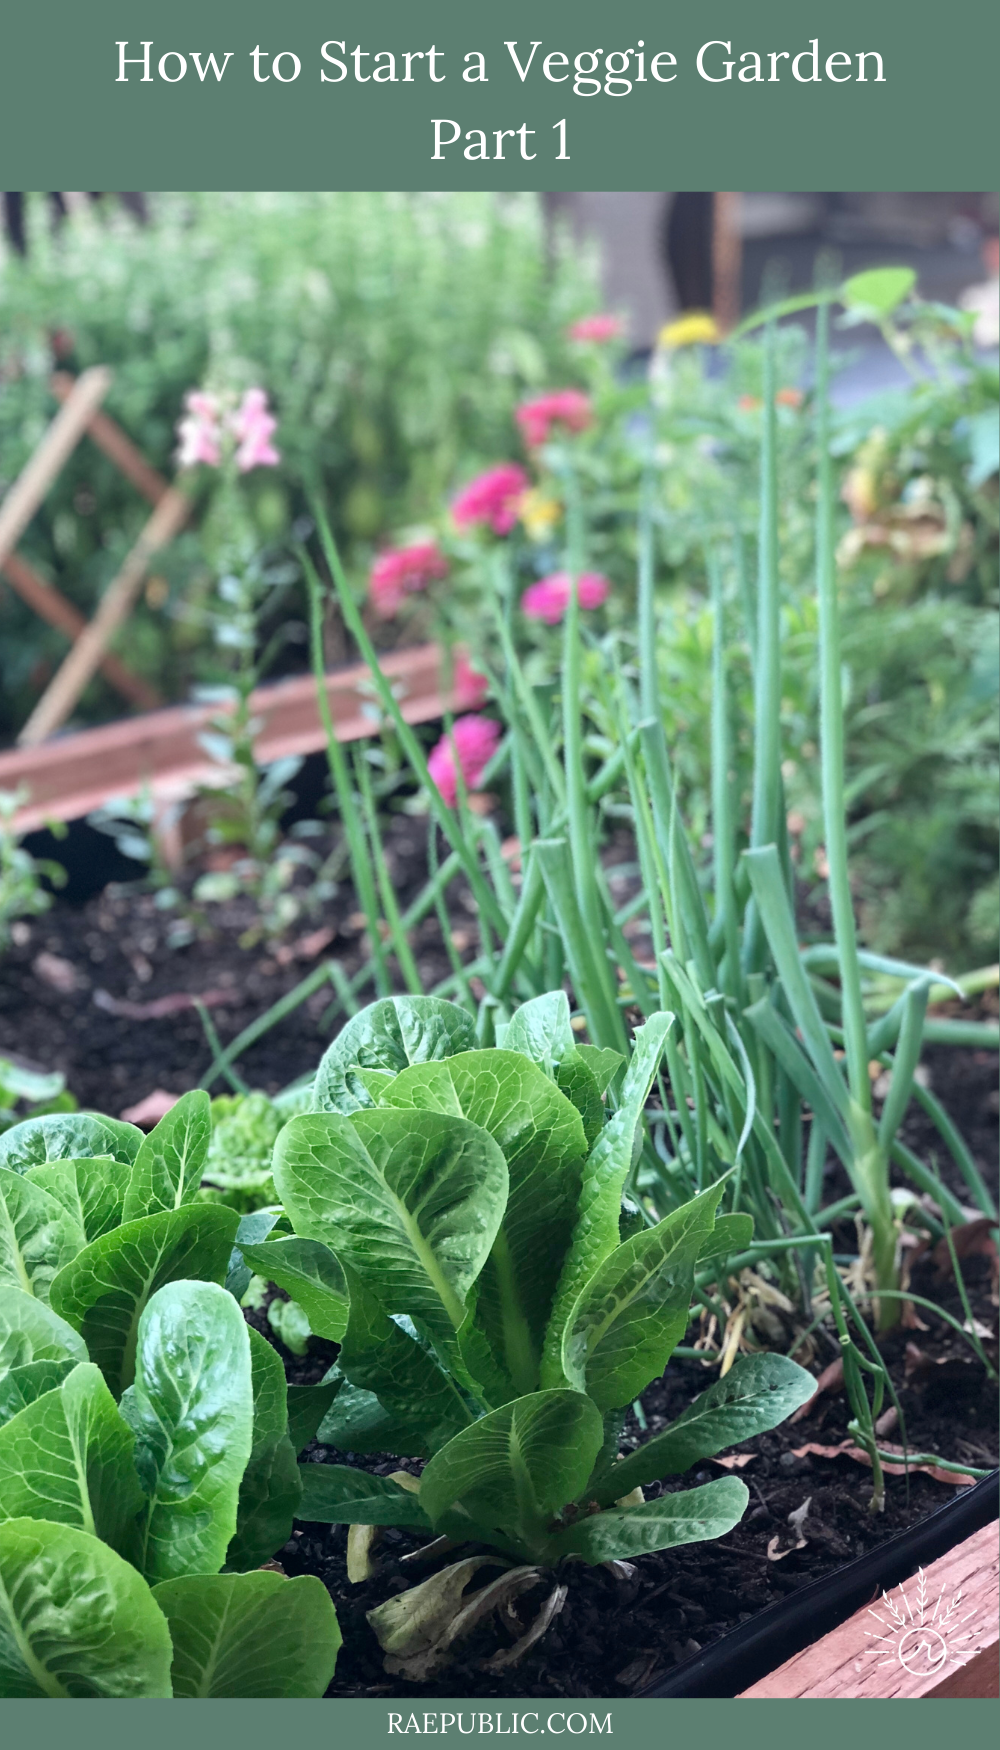 Wondering how to start your own backyard vegetable garden? This is the place to start. Make sure to check out part 2, 3, and 4 too.